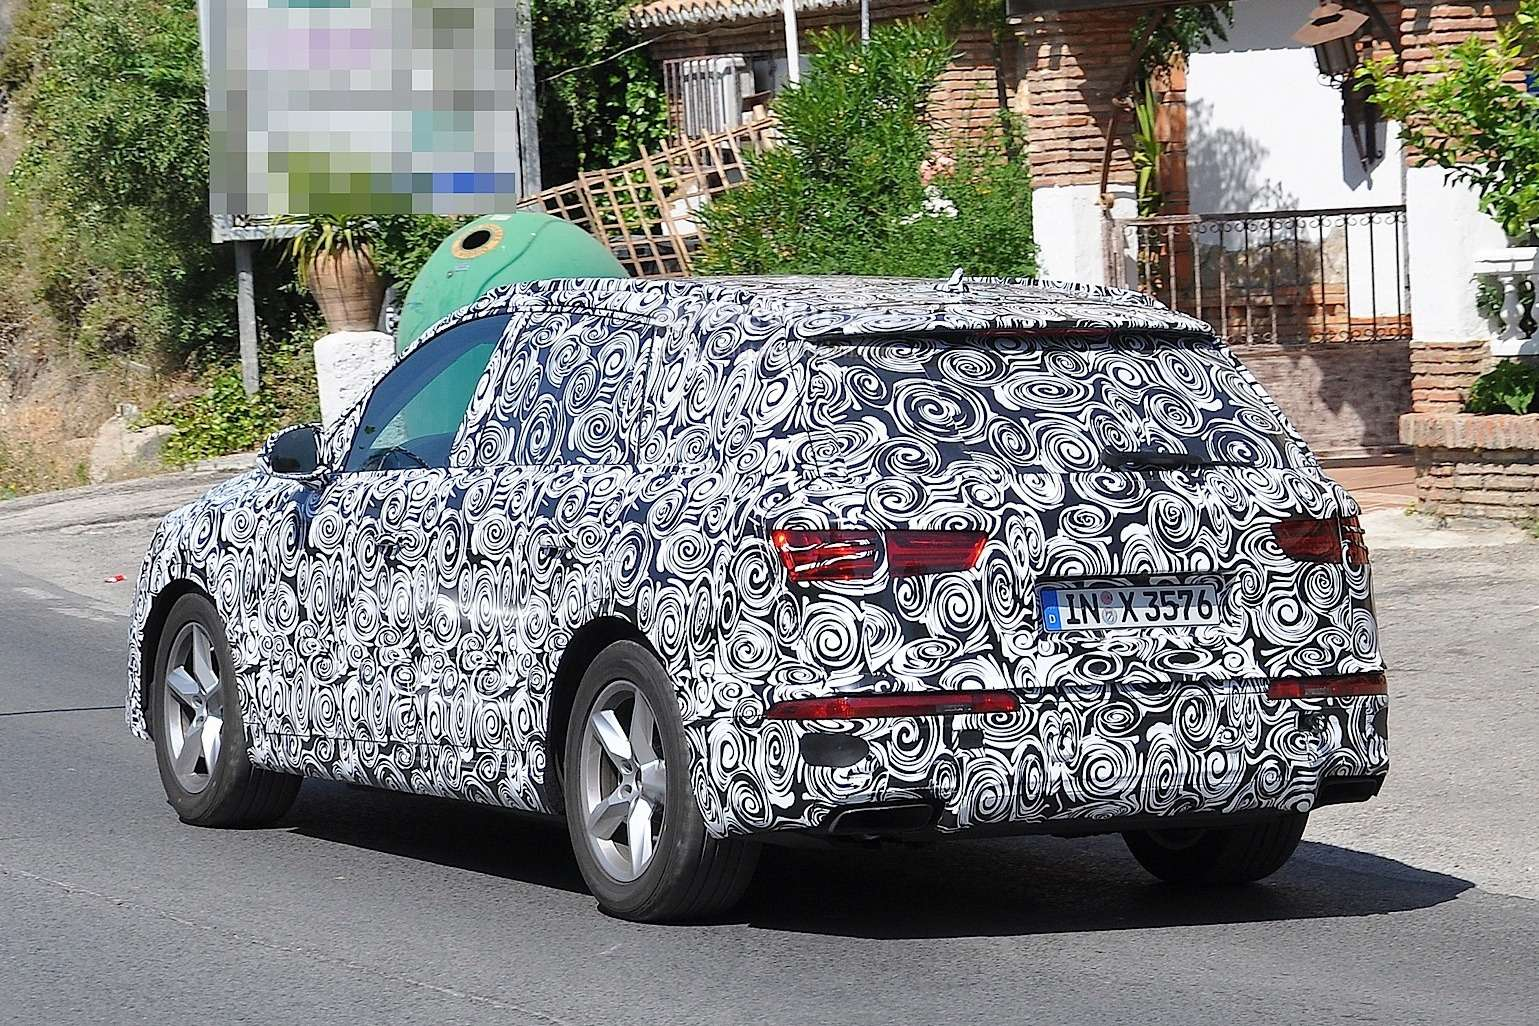 audi-q7-prototype-shows-its-headlights-and-trapezoidal-exhausts-in-latest-spy-photos-1080p-5